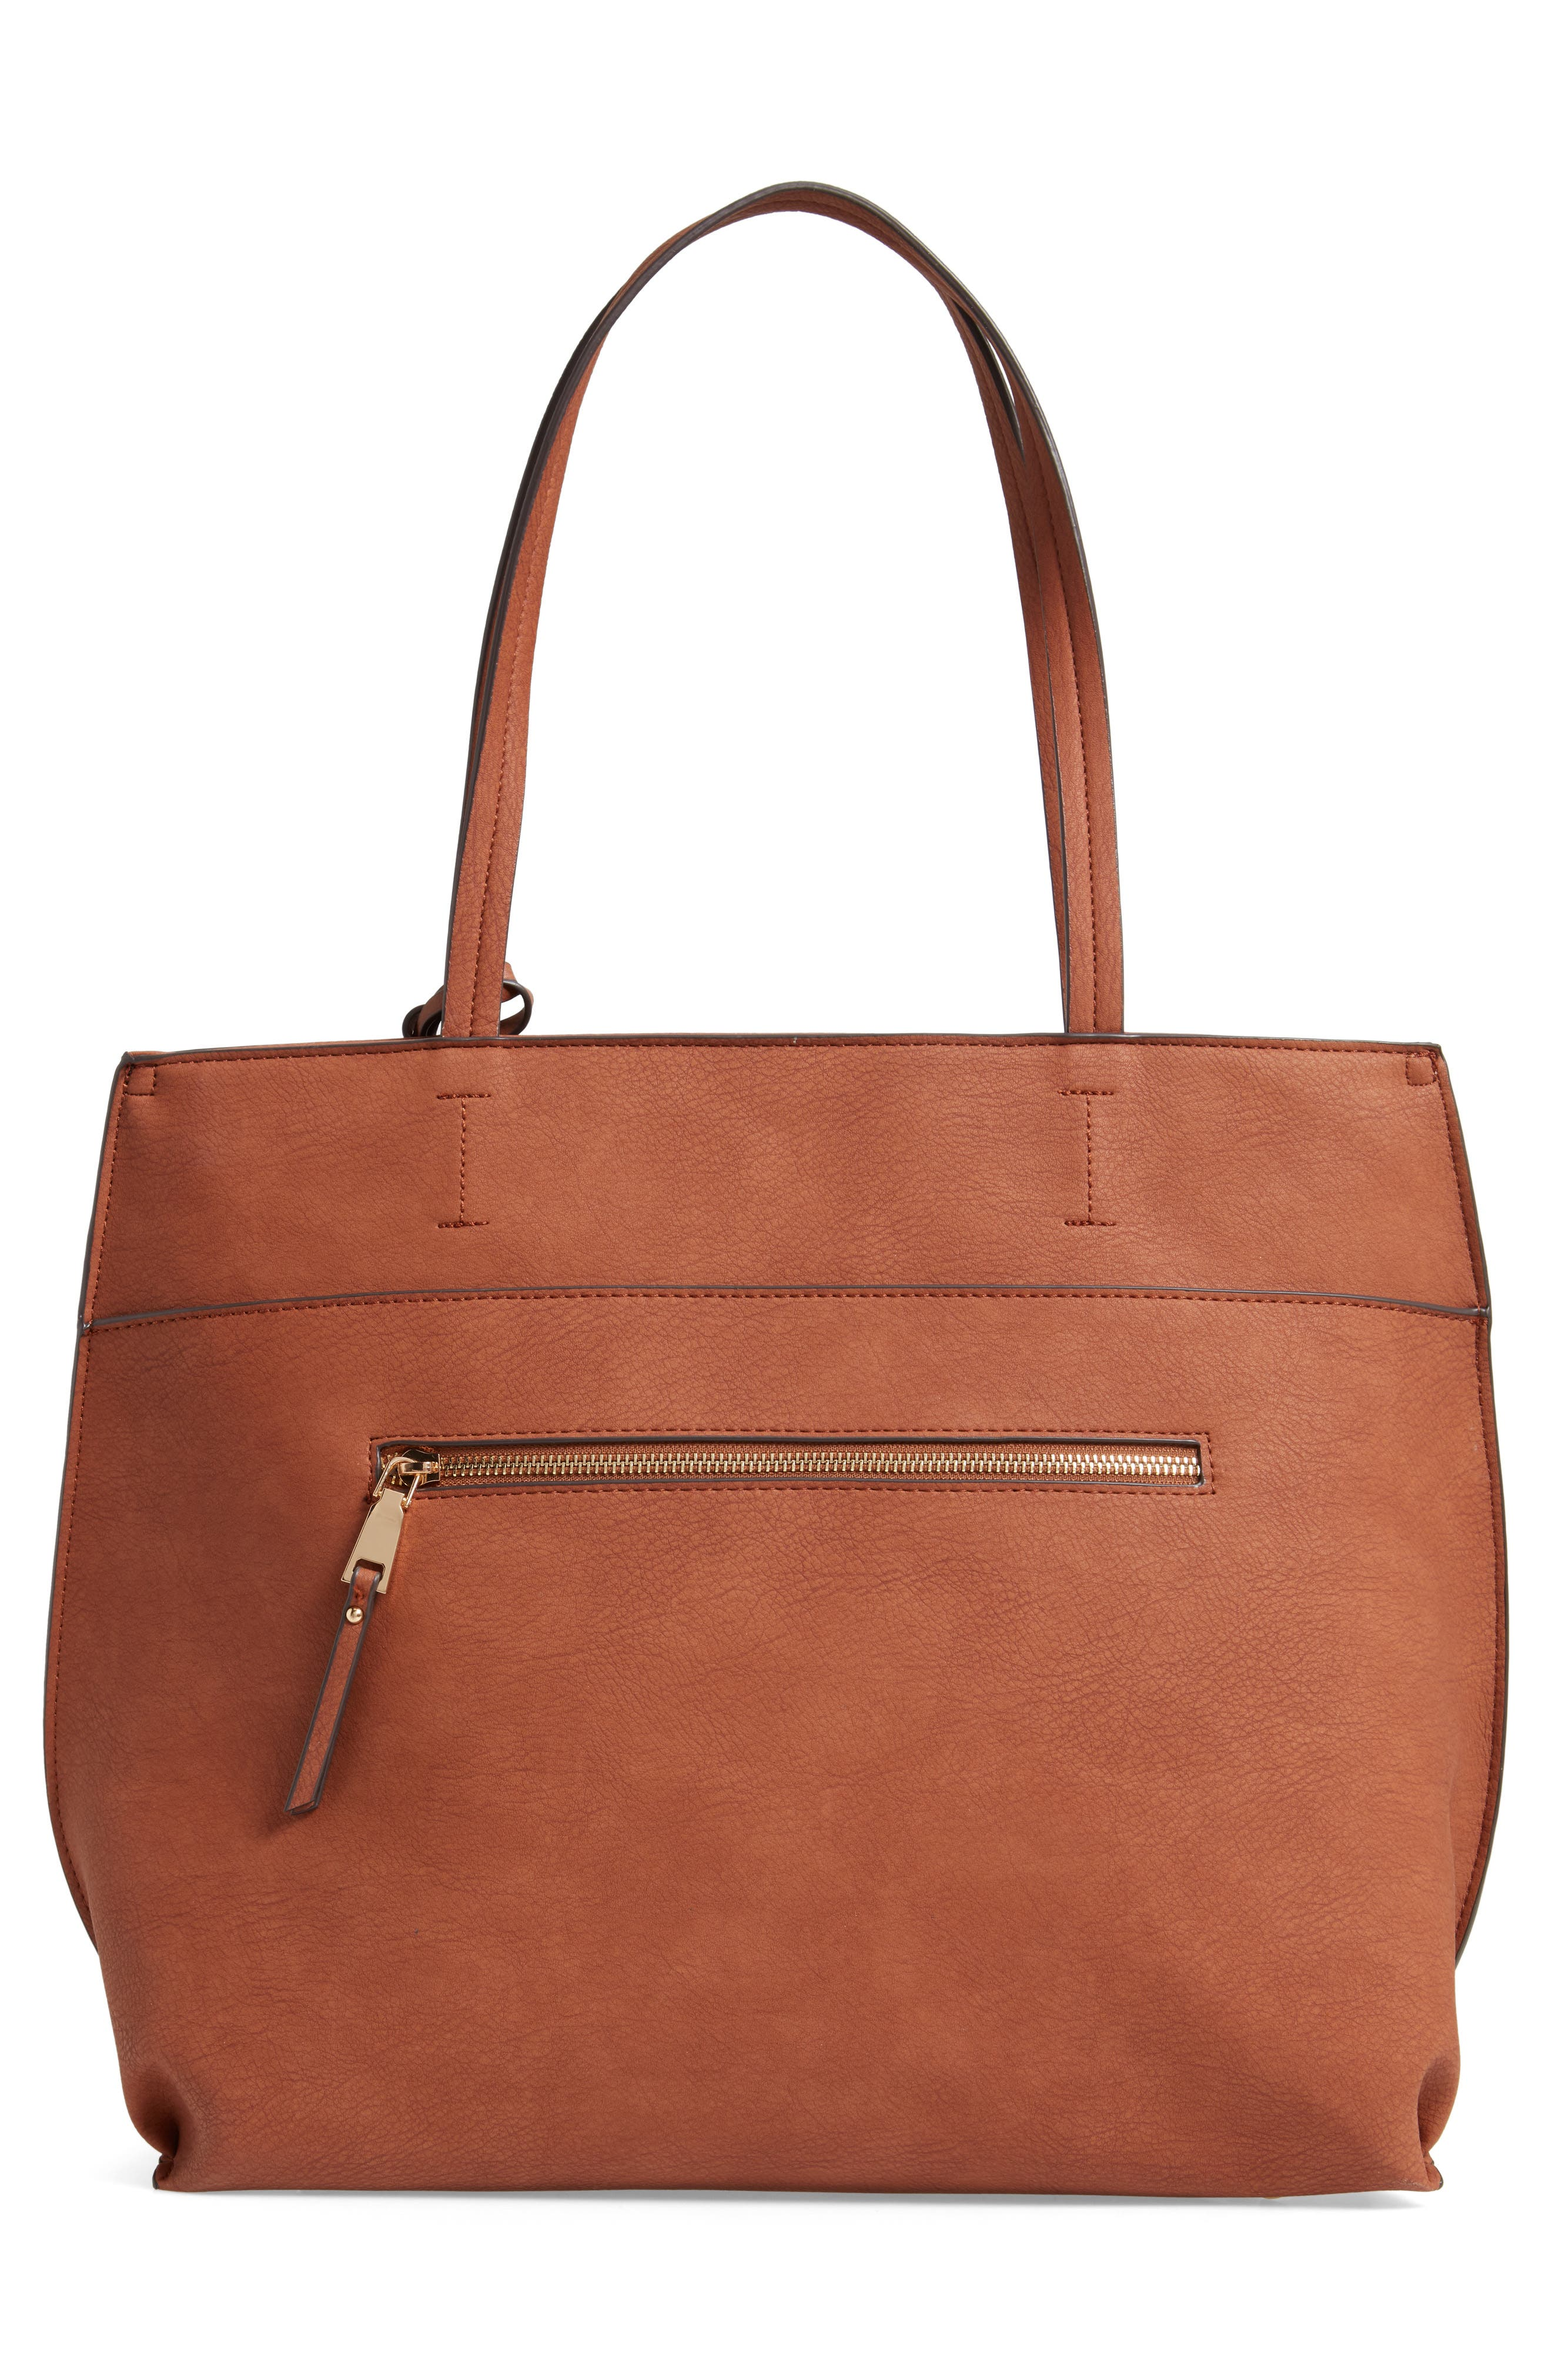 SOLE SOCIETY, Lyndi Faux Leather Tote, Alternate thumbnail 4, color, COGNAC